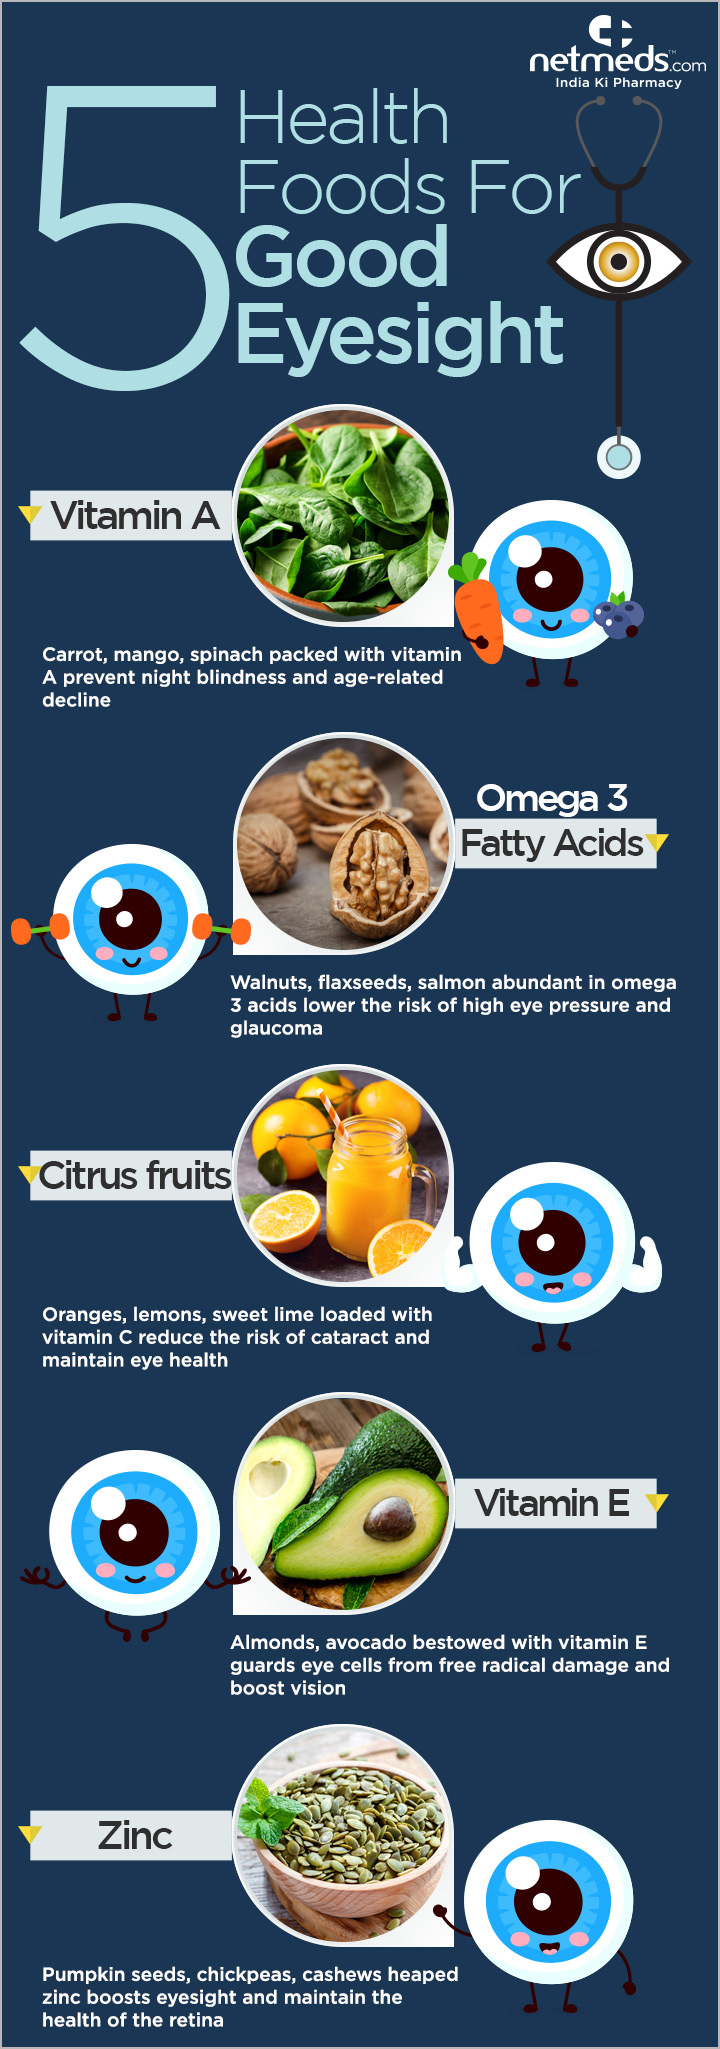 Food for good eyesight